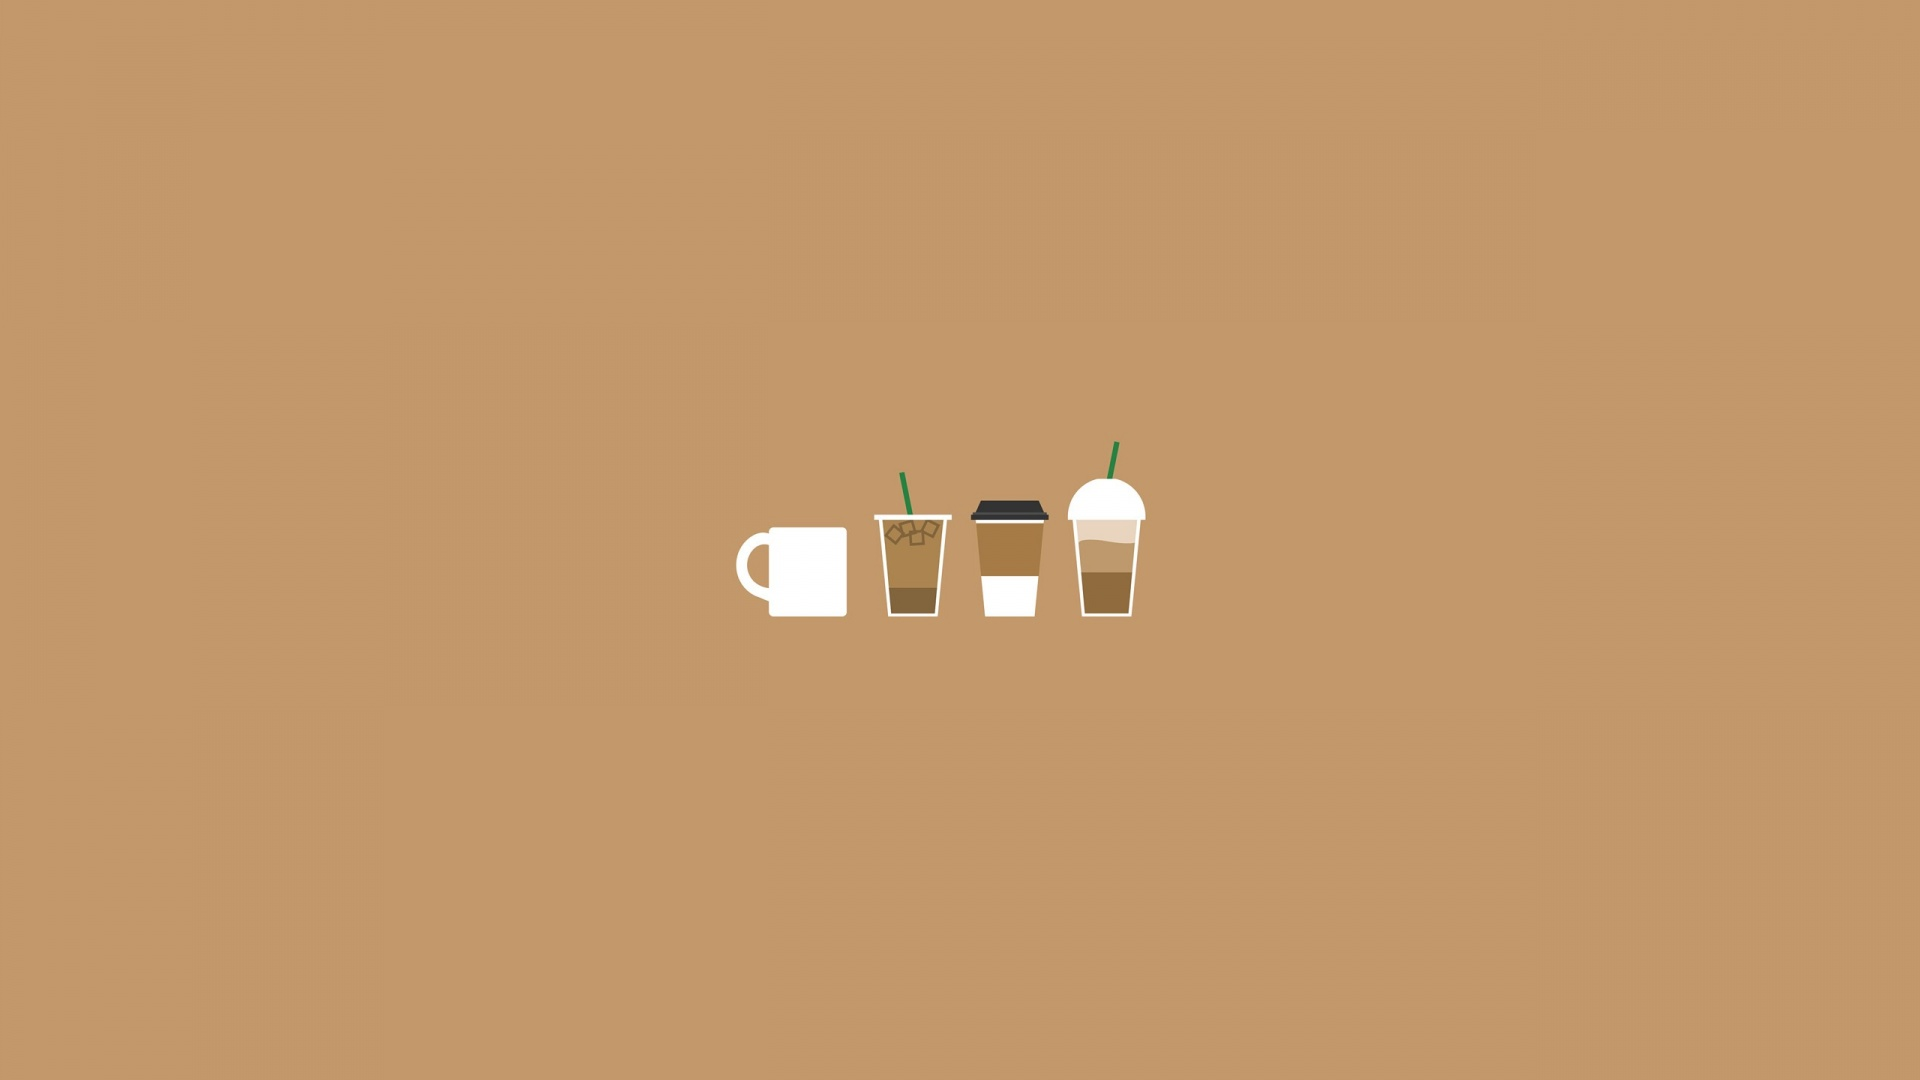 coffee illustration wallpapers 35892 1920x1080